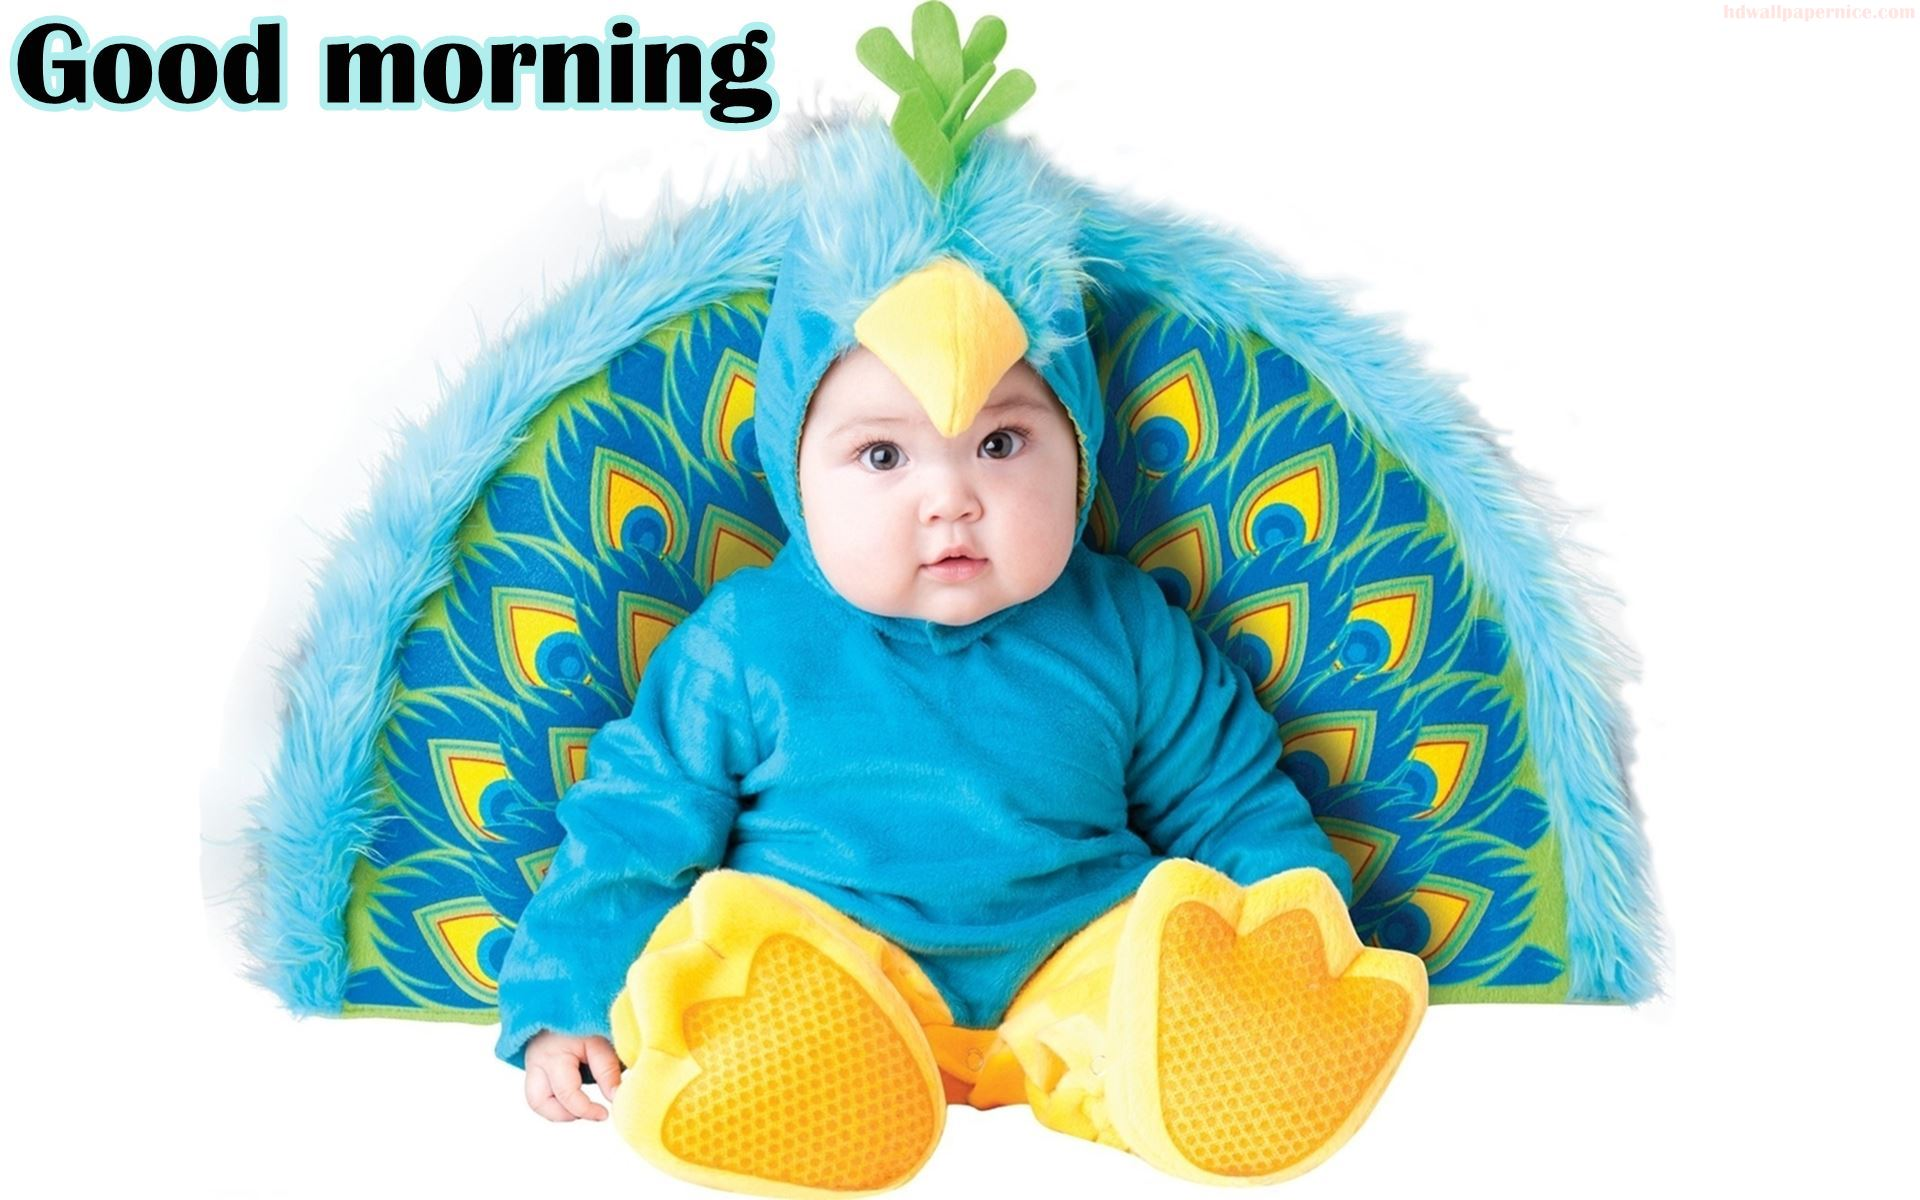 Good Morning Baby Cute : Good morning wishes with baby pictures images page